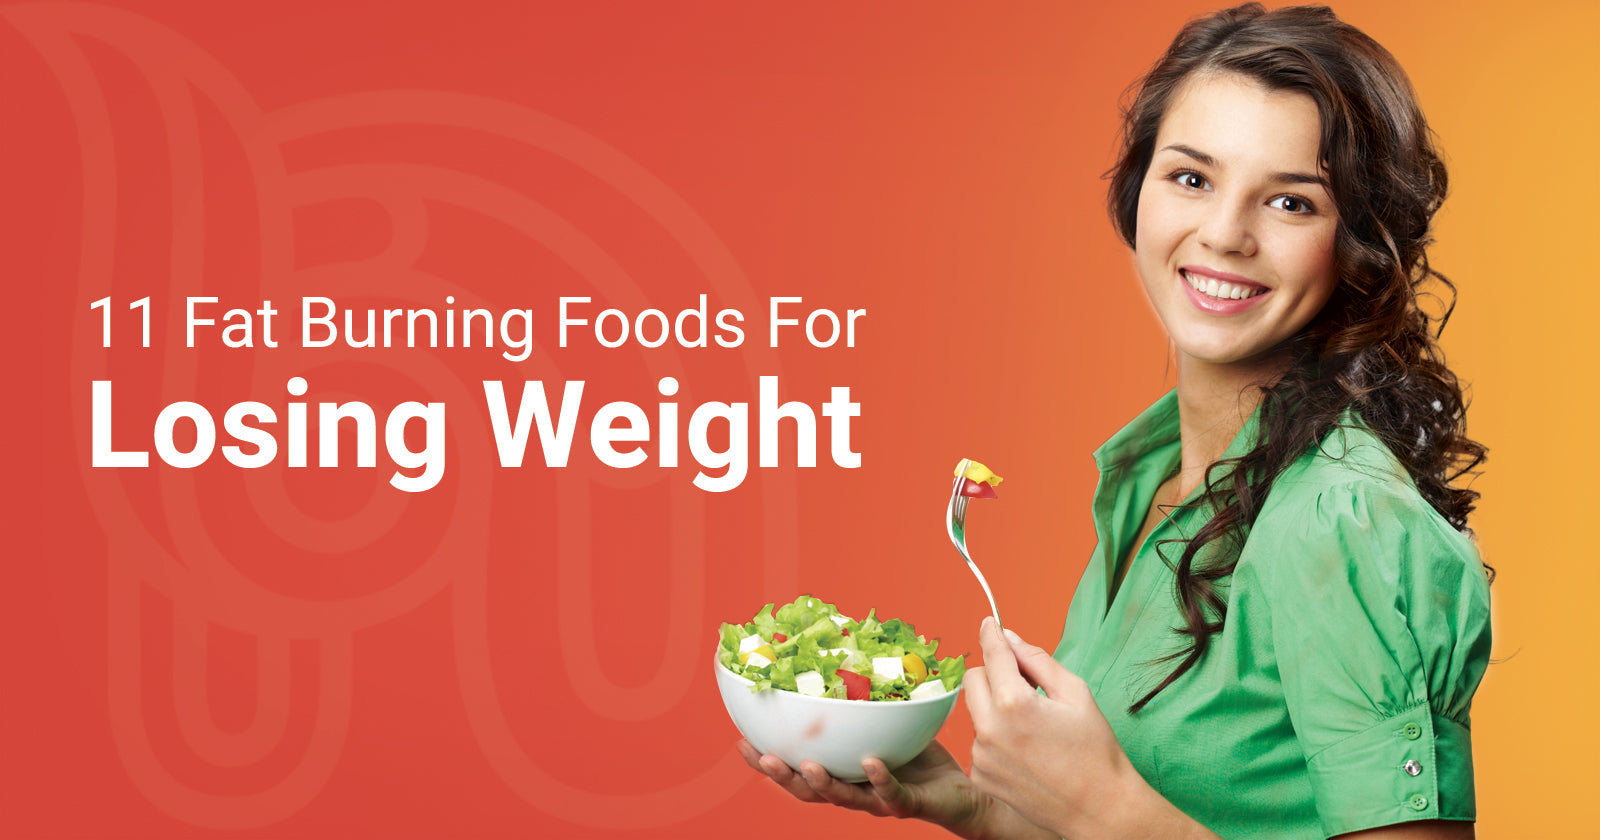 11 Fat Burning Foods For Losing Weight